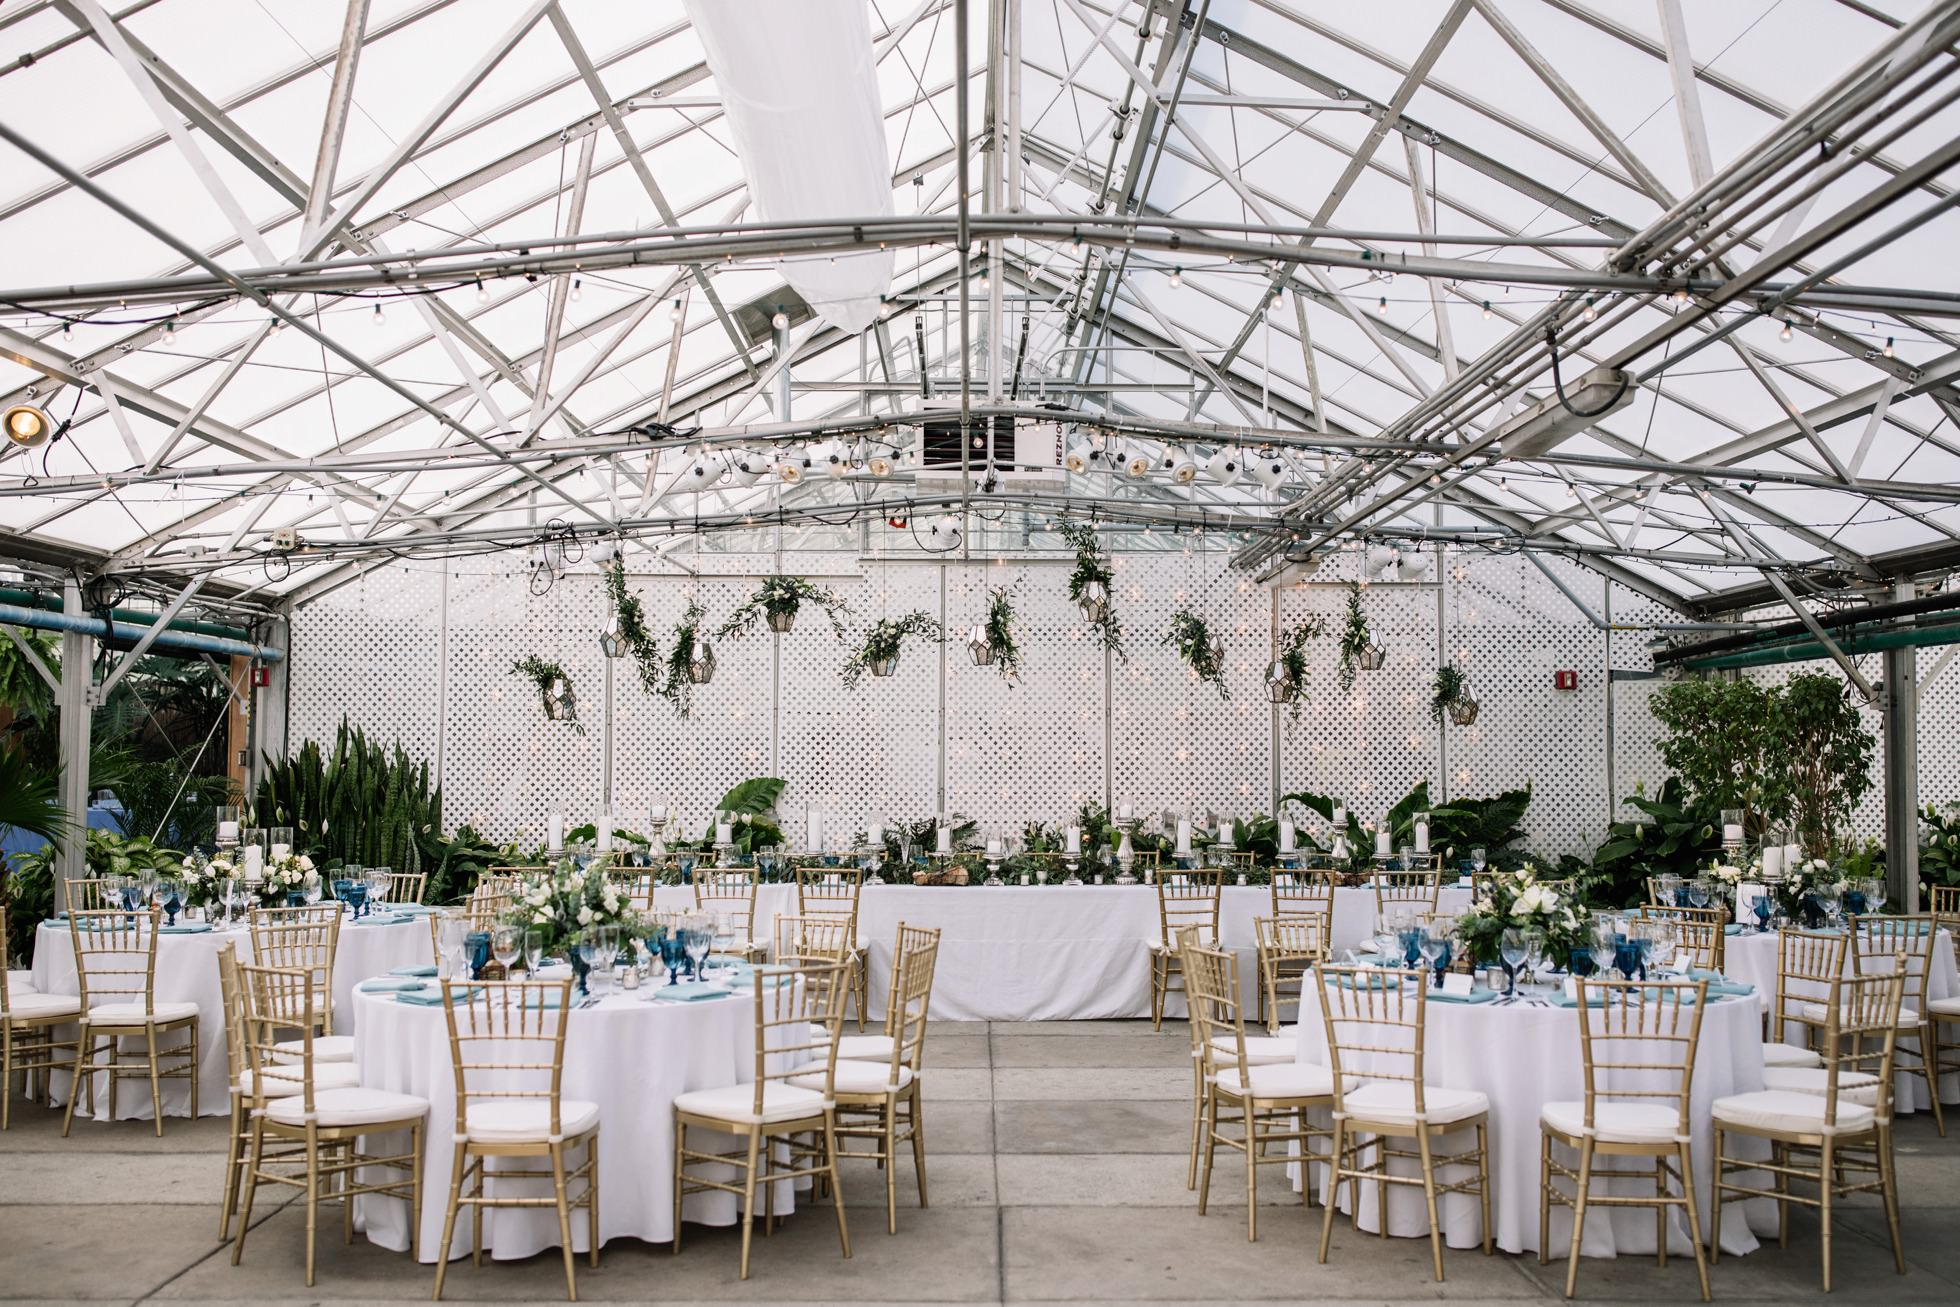 The Grand Prospect Hall Brooklyn Private Party Wedding Venue